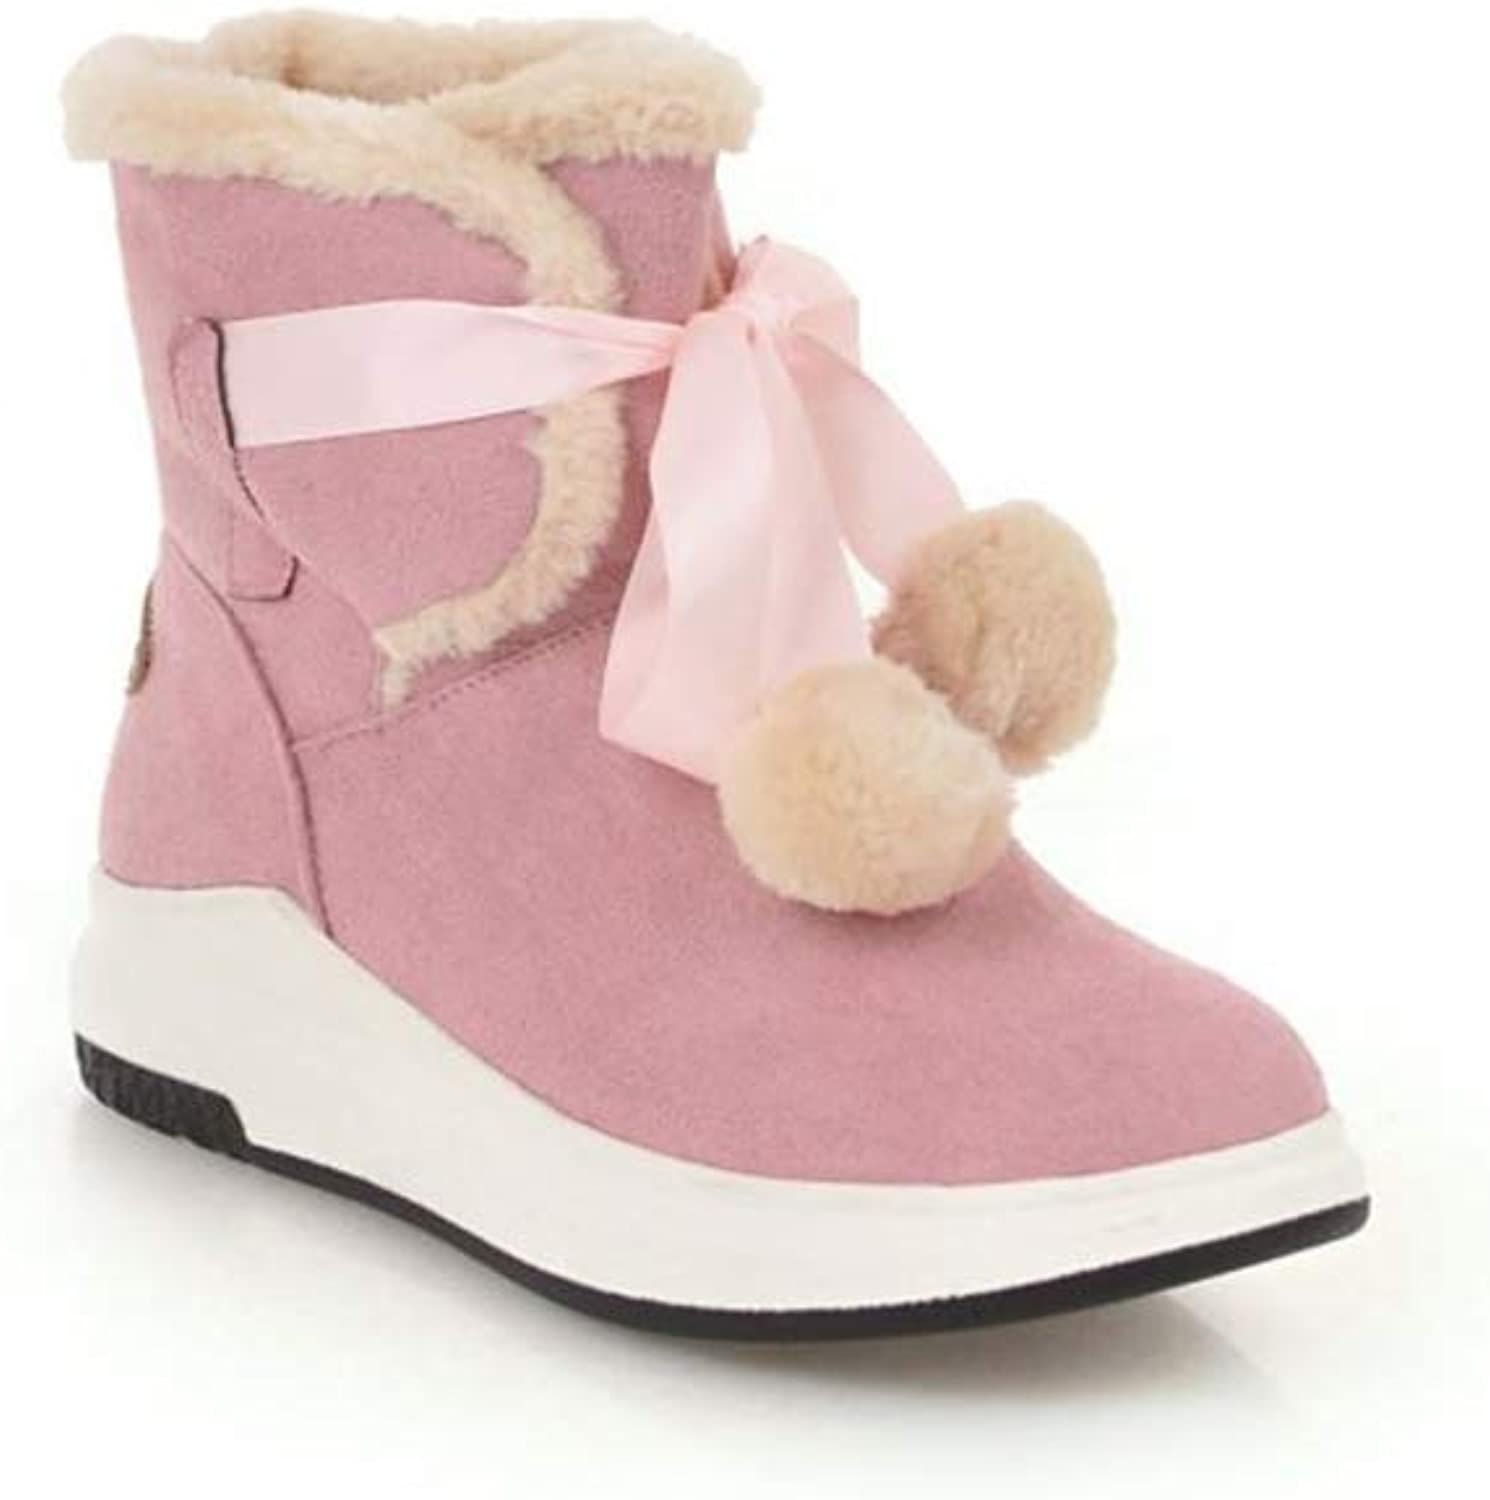 pink town Women's Stylish Waterproof Fur Lined Fur Ball Platform Ankle Winter Snow Boots